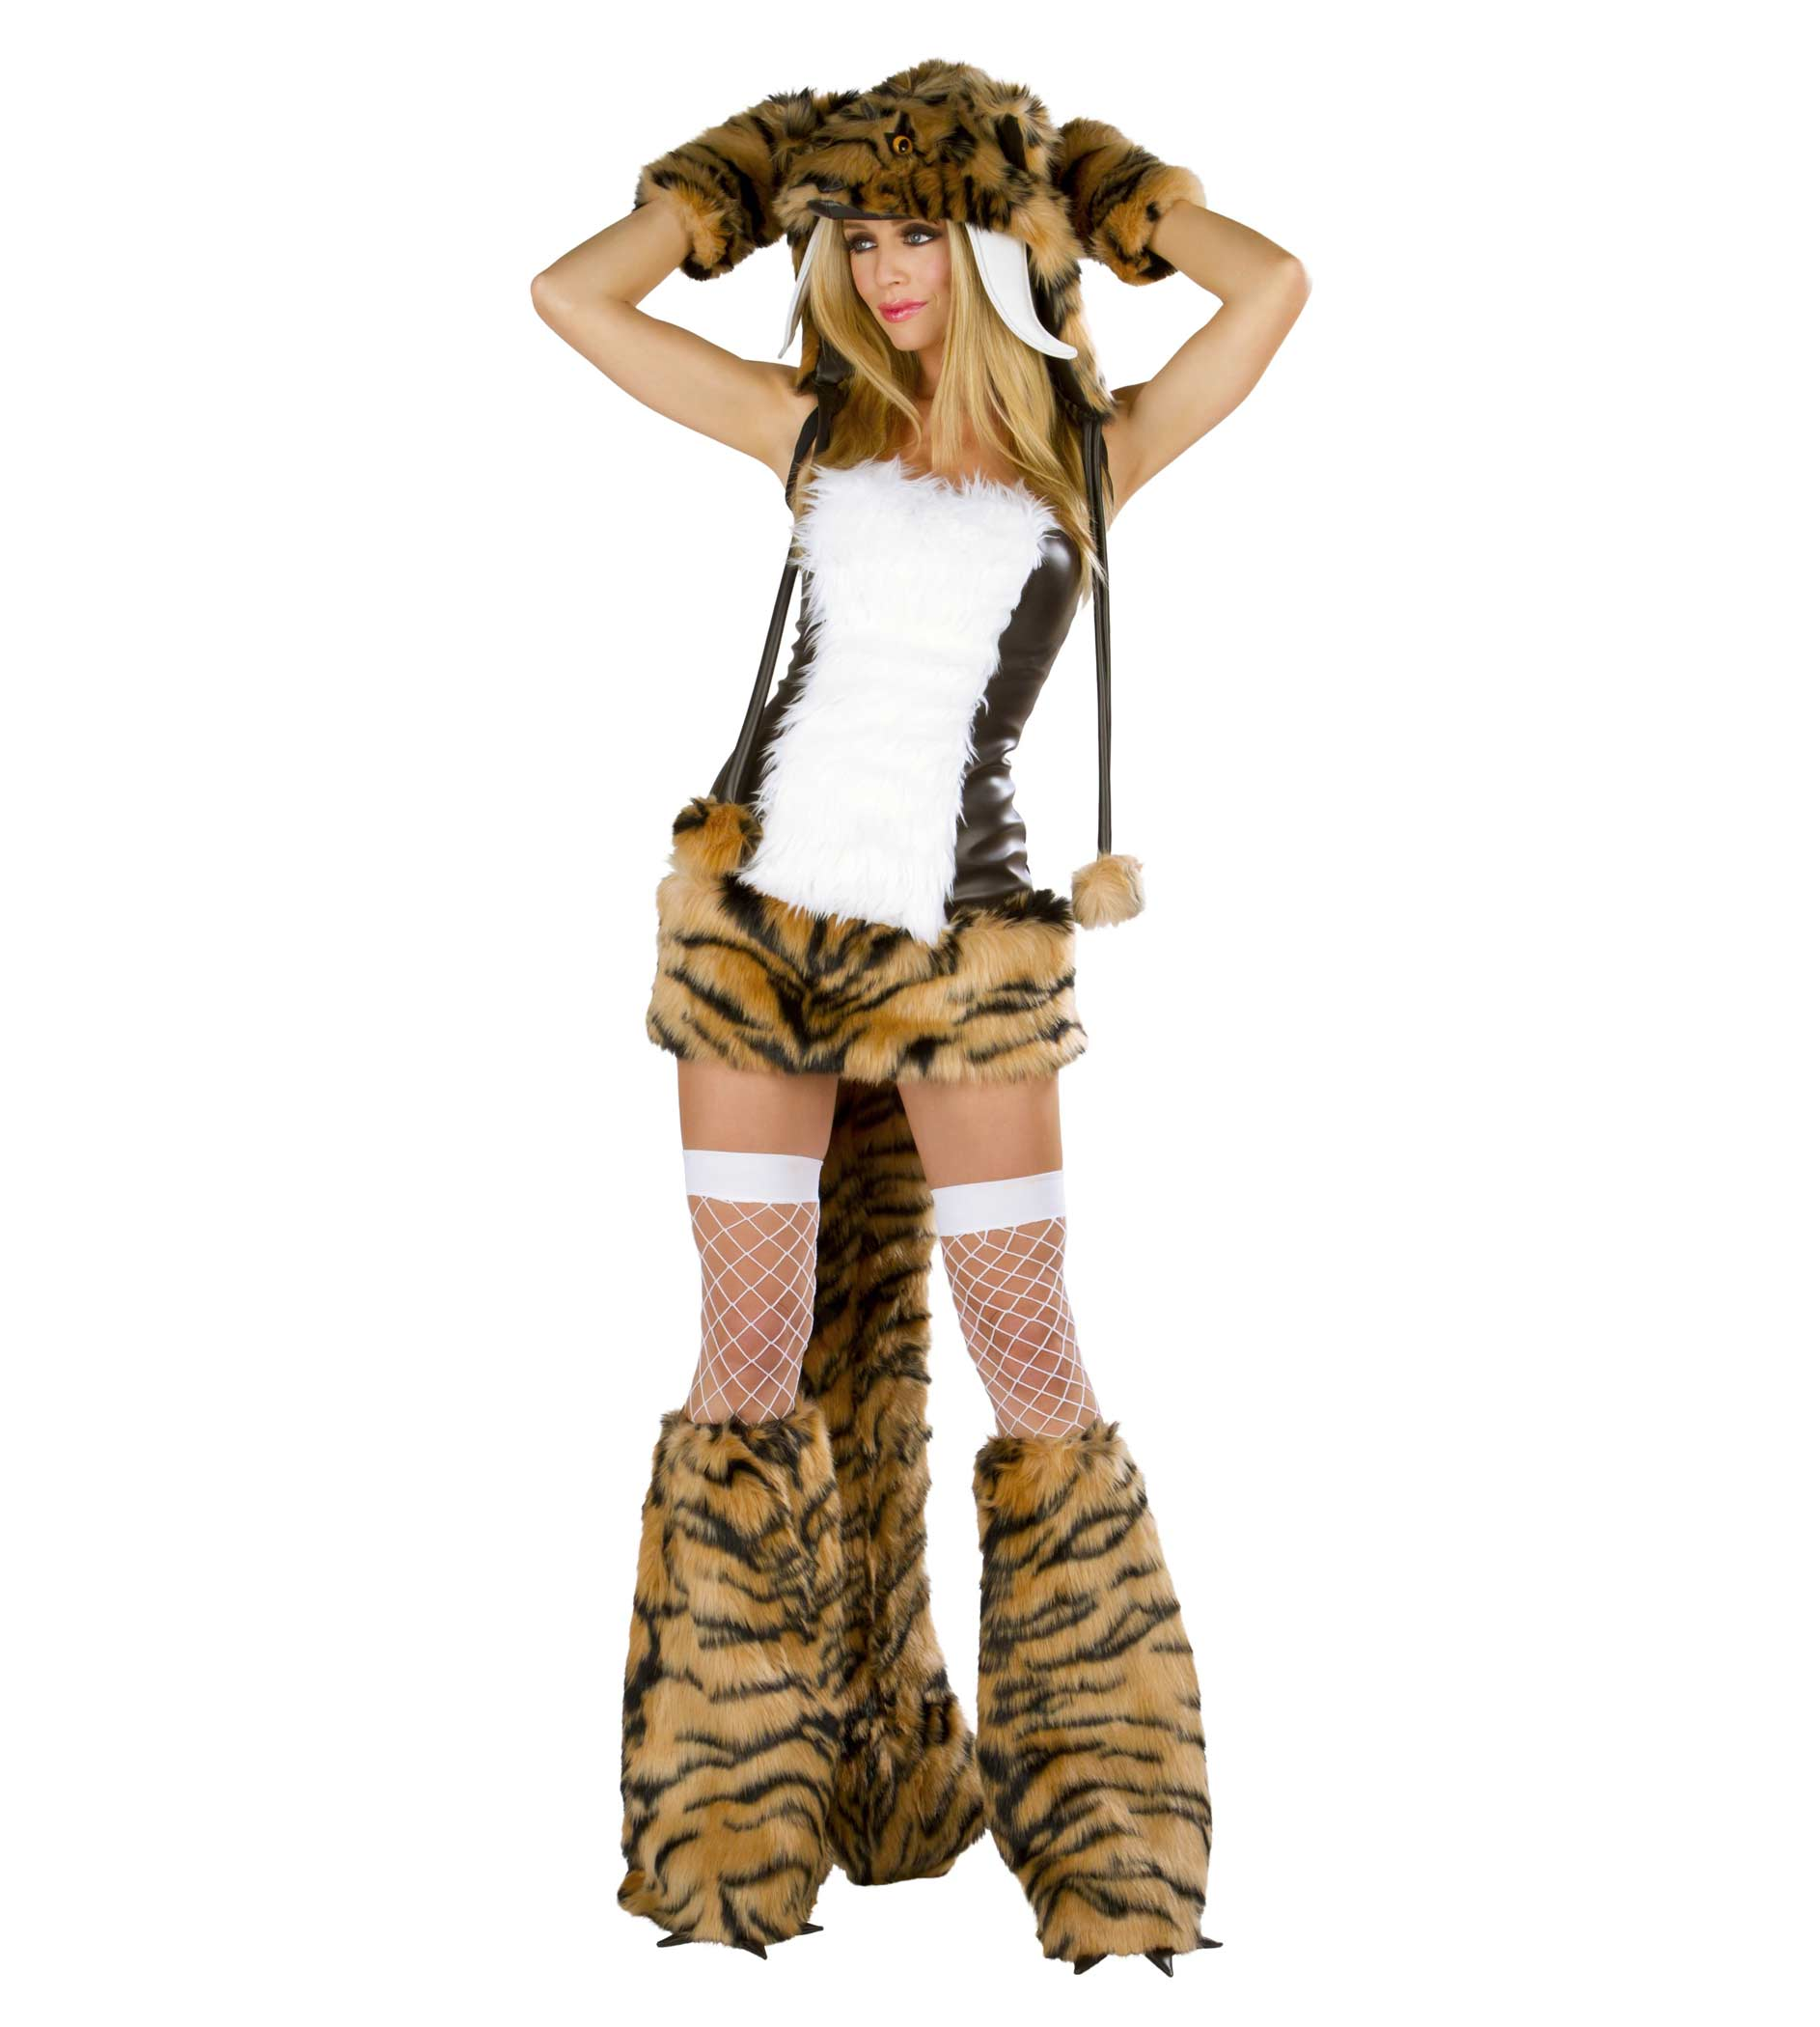 Tiger costumes for women